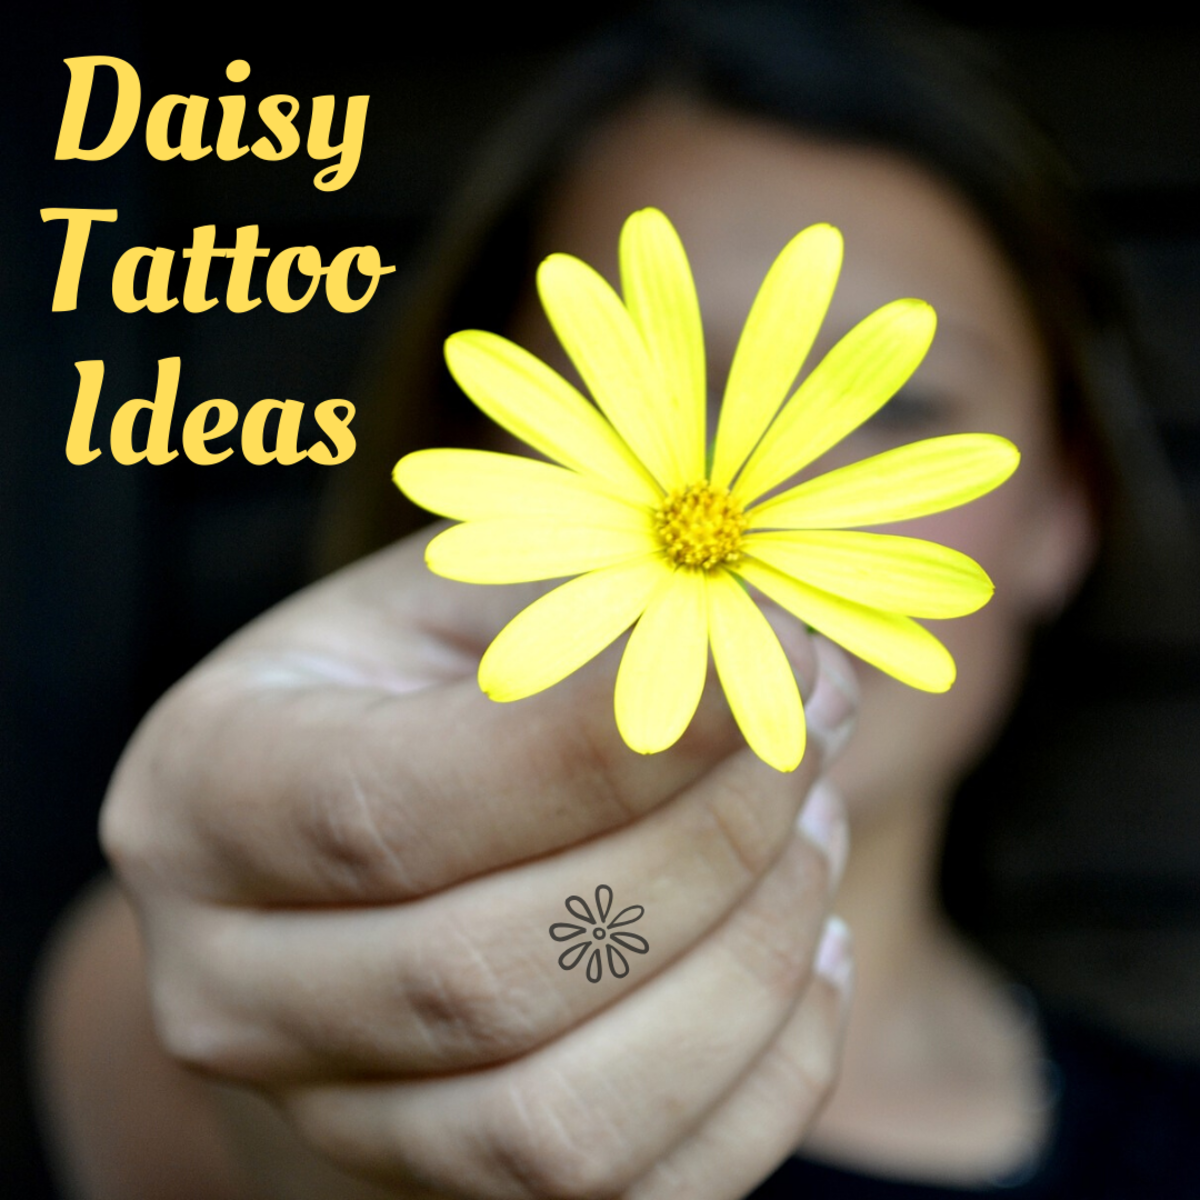 Look through a gallery of tattoo designs featuring the daisy flower.